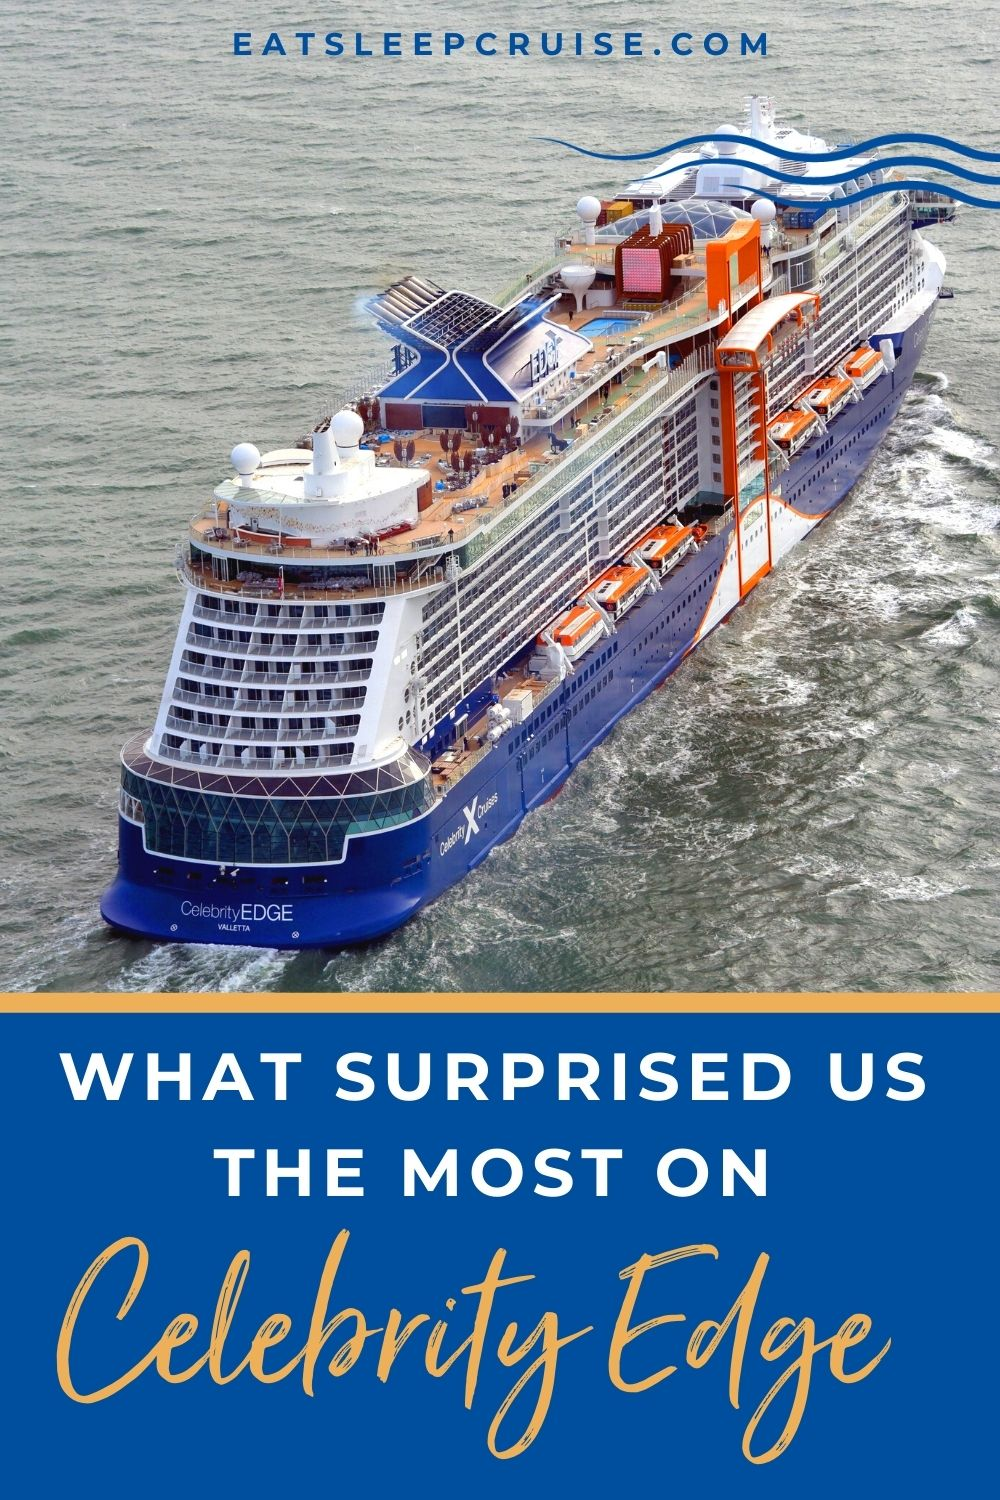 8 Surprises on First Cruise on Celebrity Edge